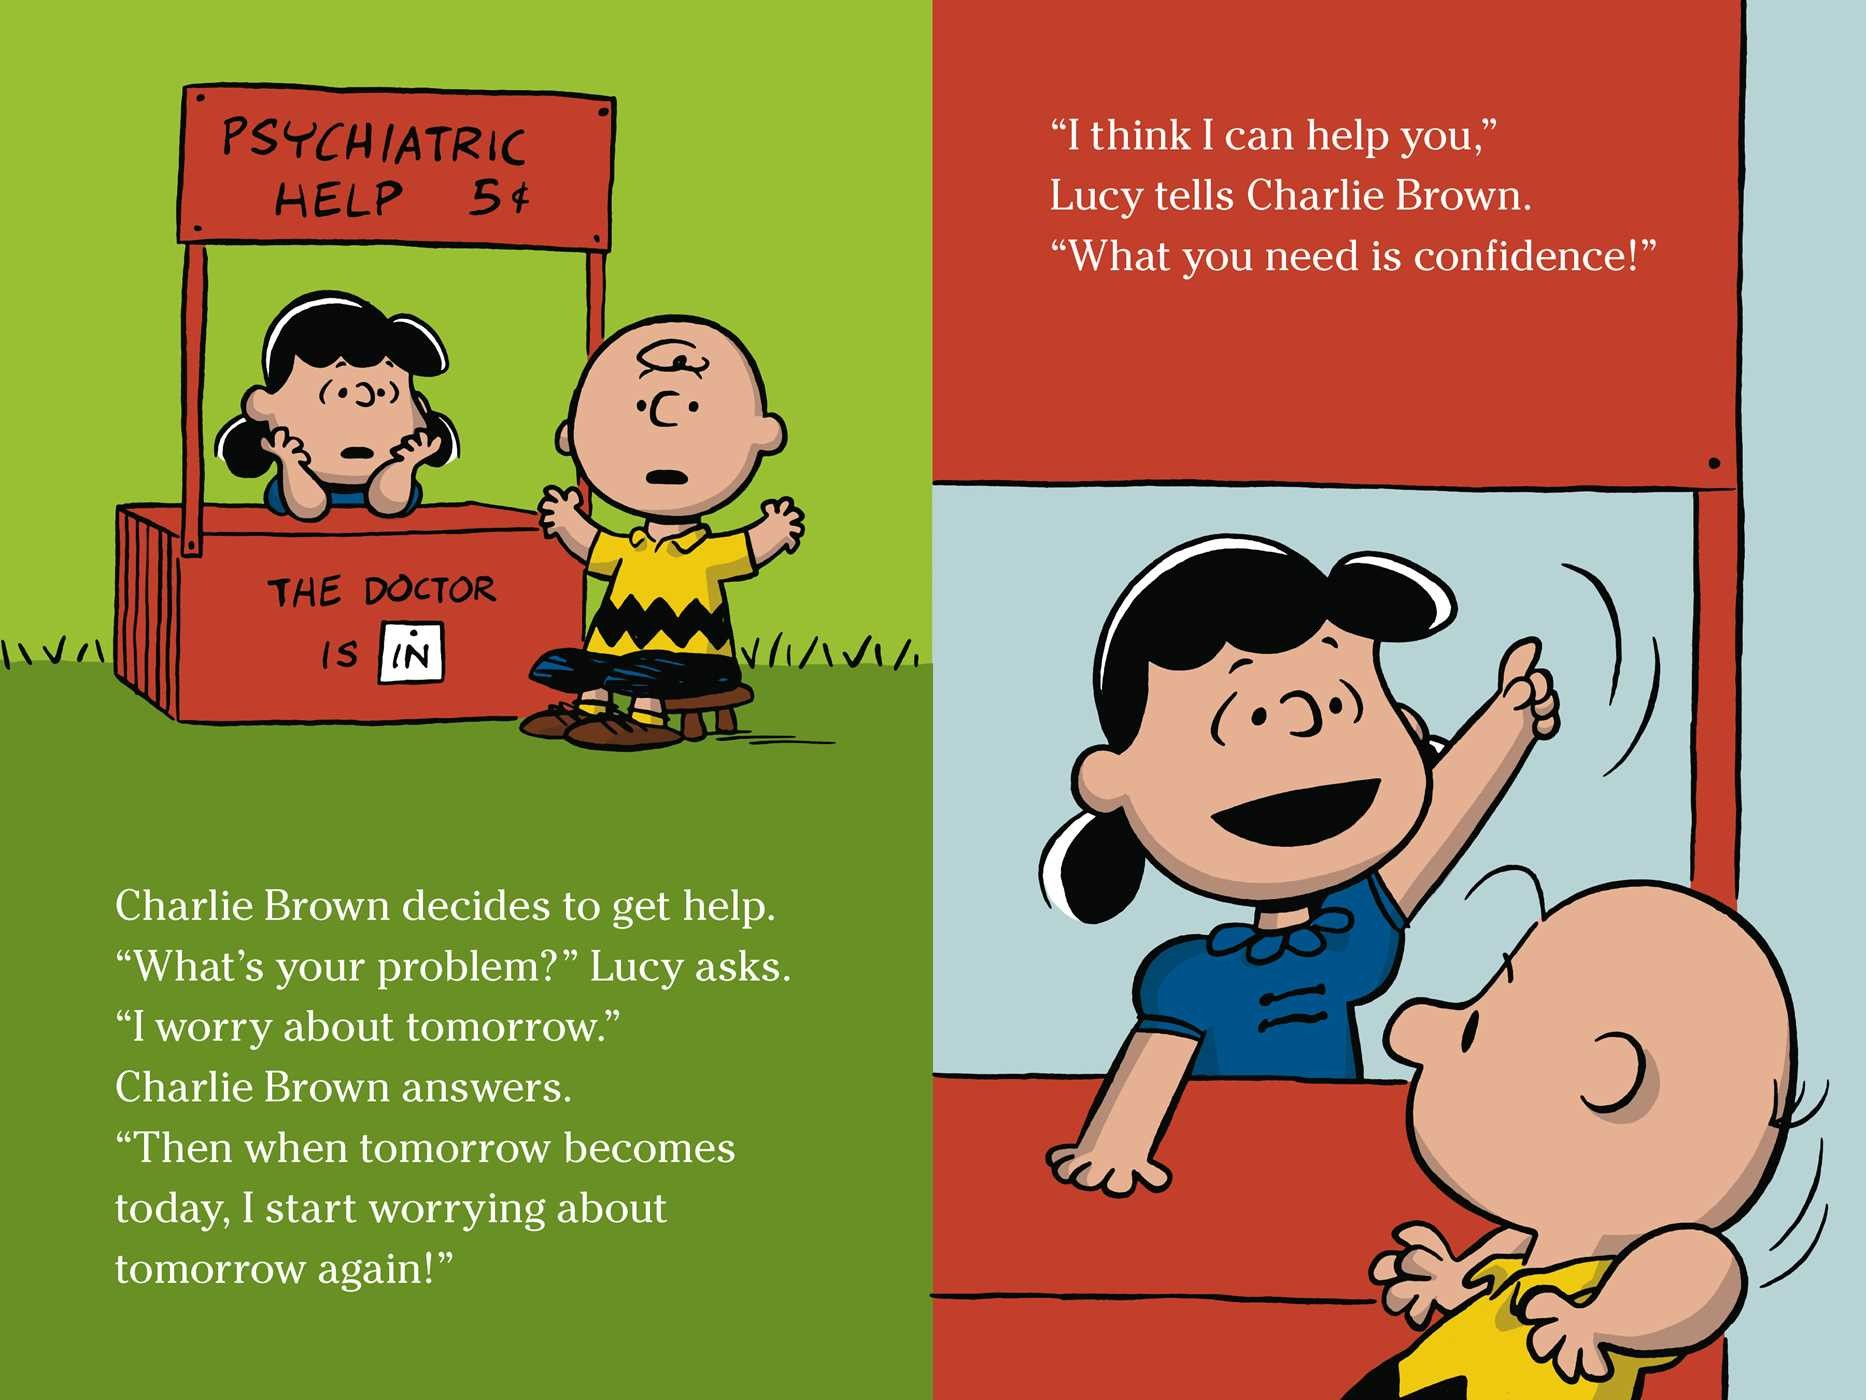 Time for school charlie brown 9781481436052.in01